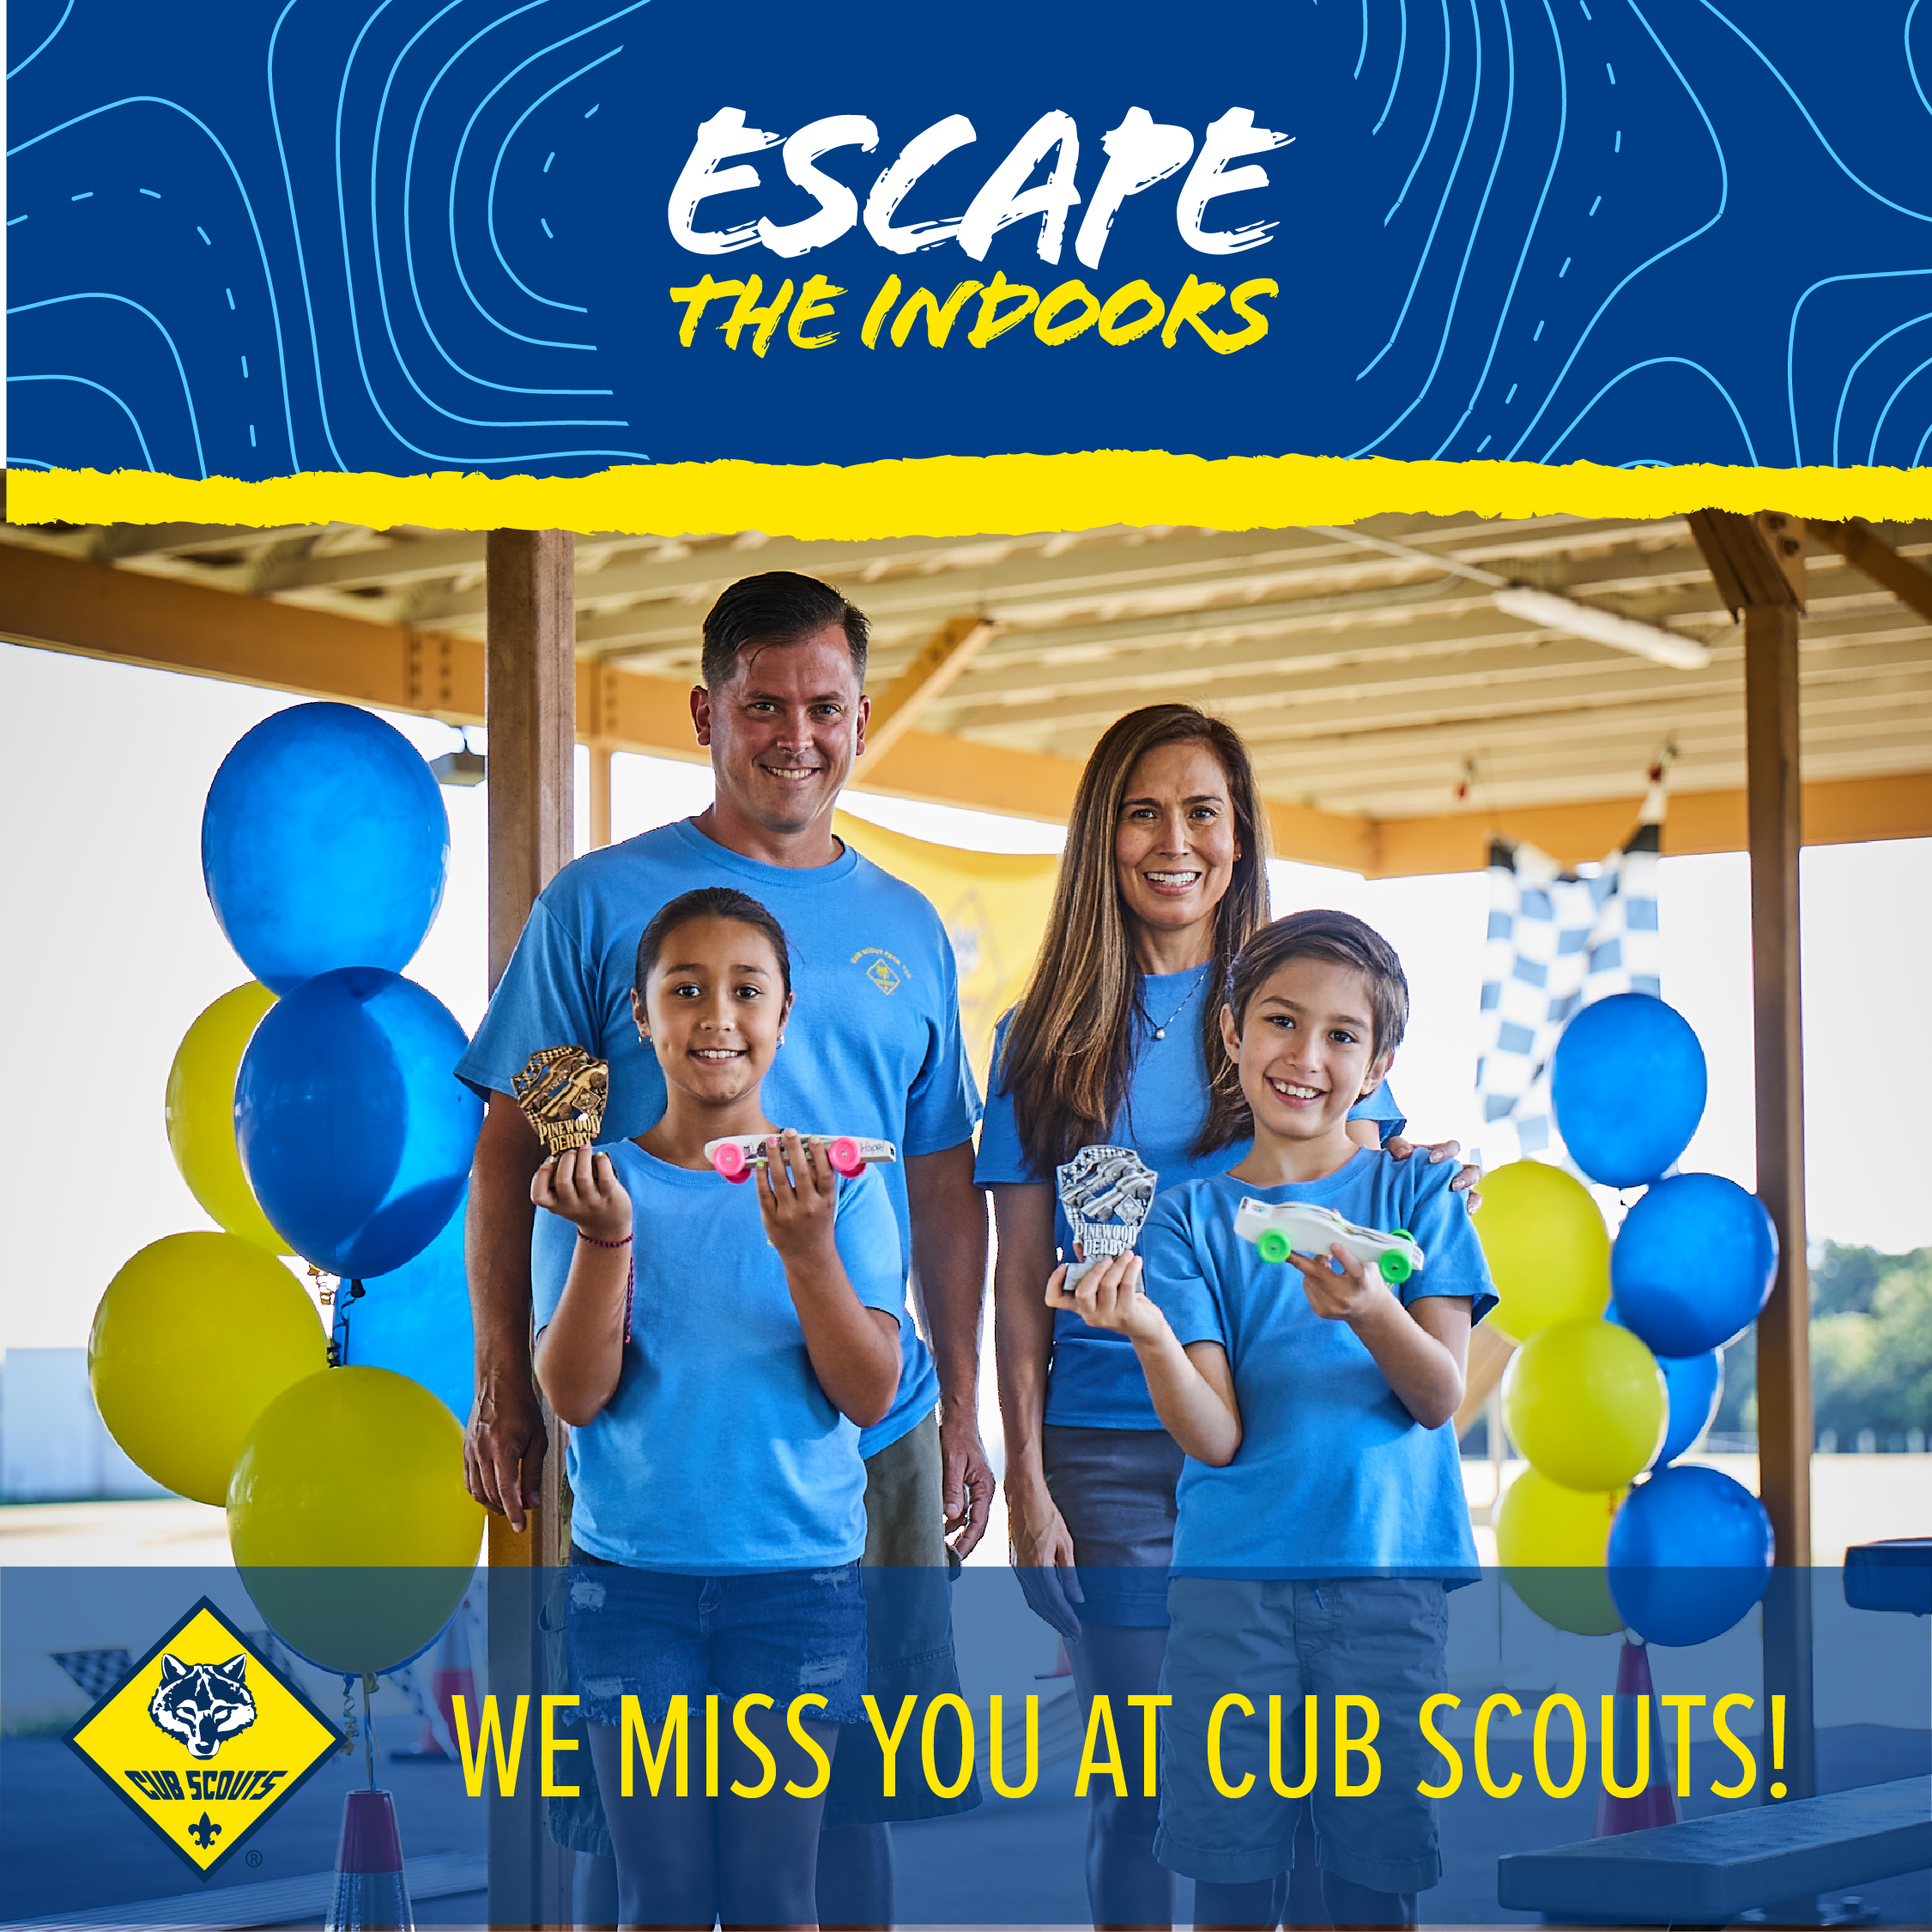 Escape The Indoors Win back social media image - Welcome Back - We miss you at Cub Scouts!